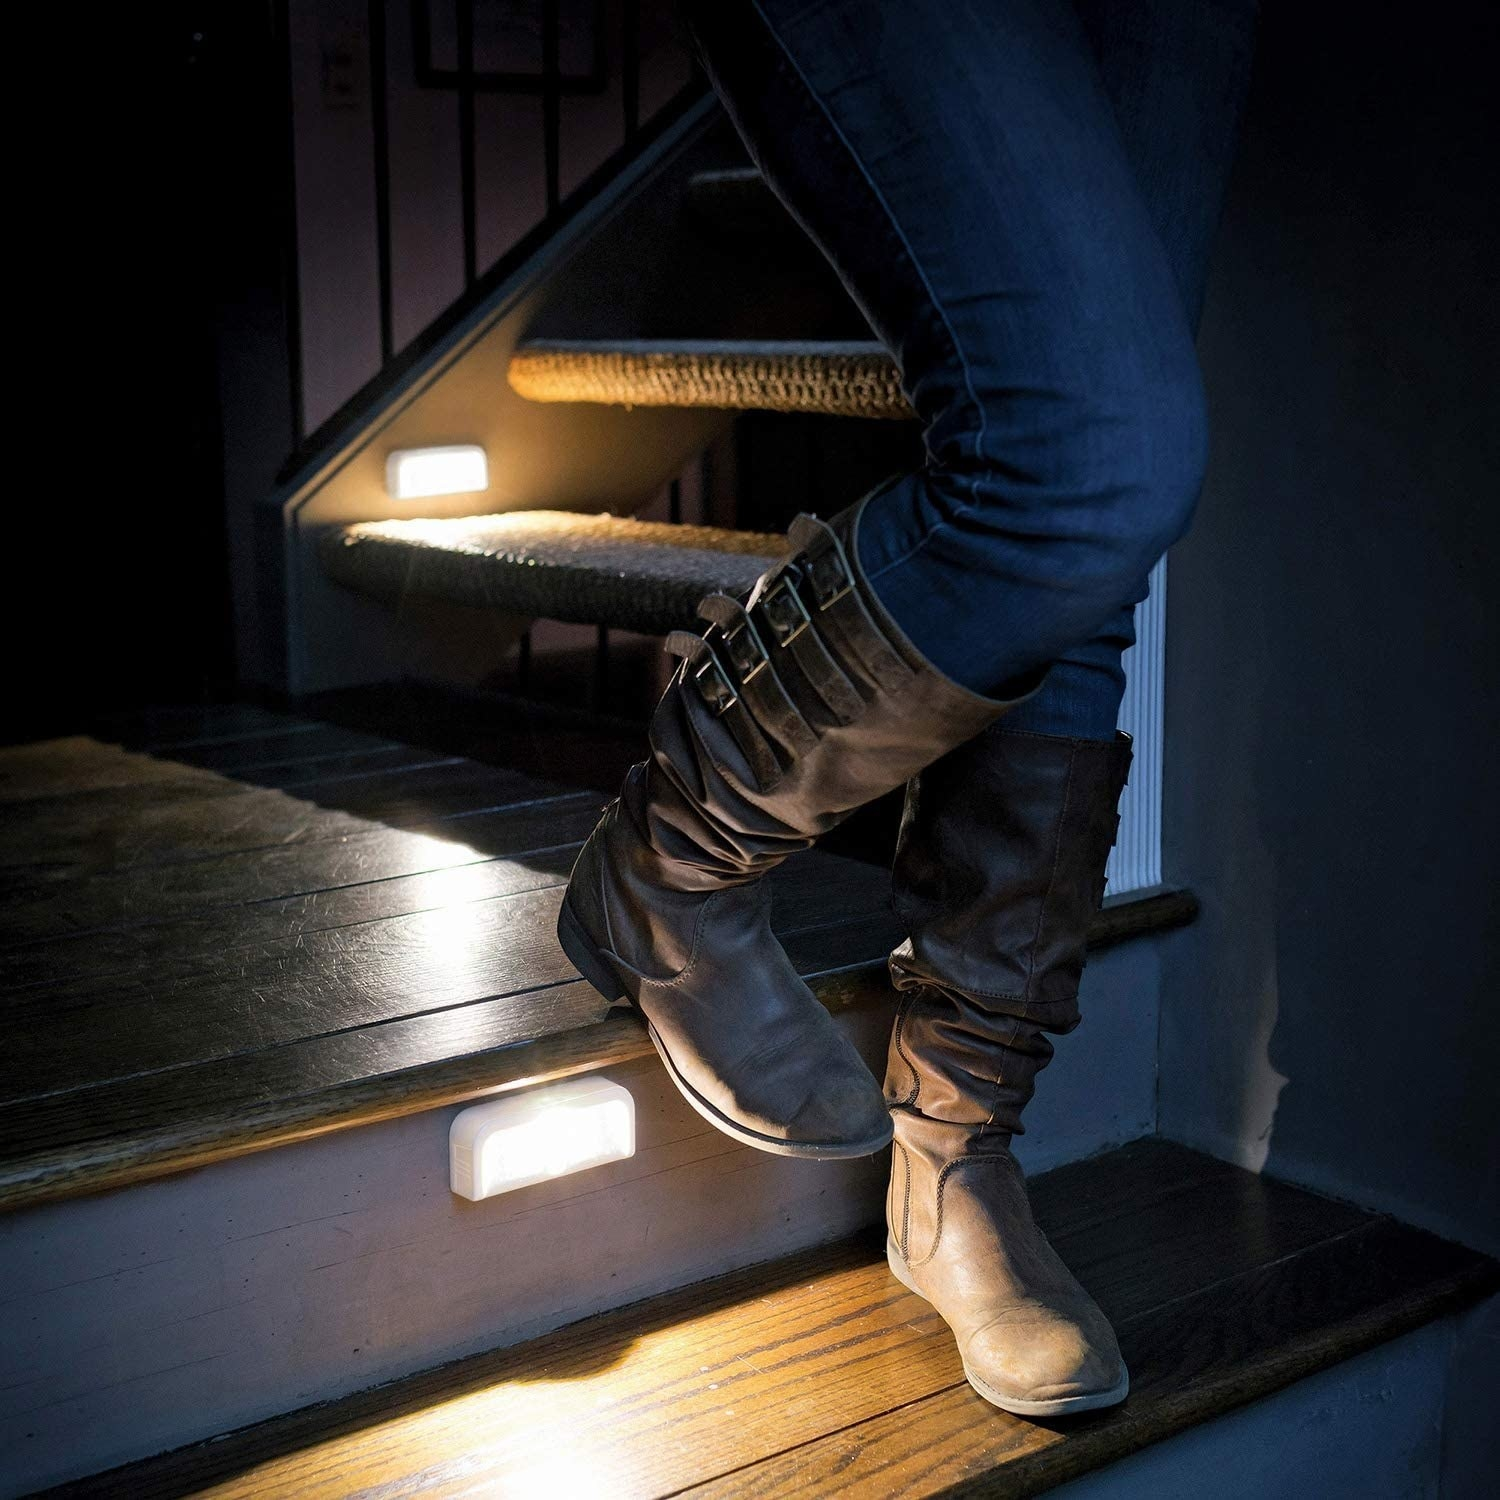 A person walking up dark stairs with the stick-on lights on them